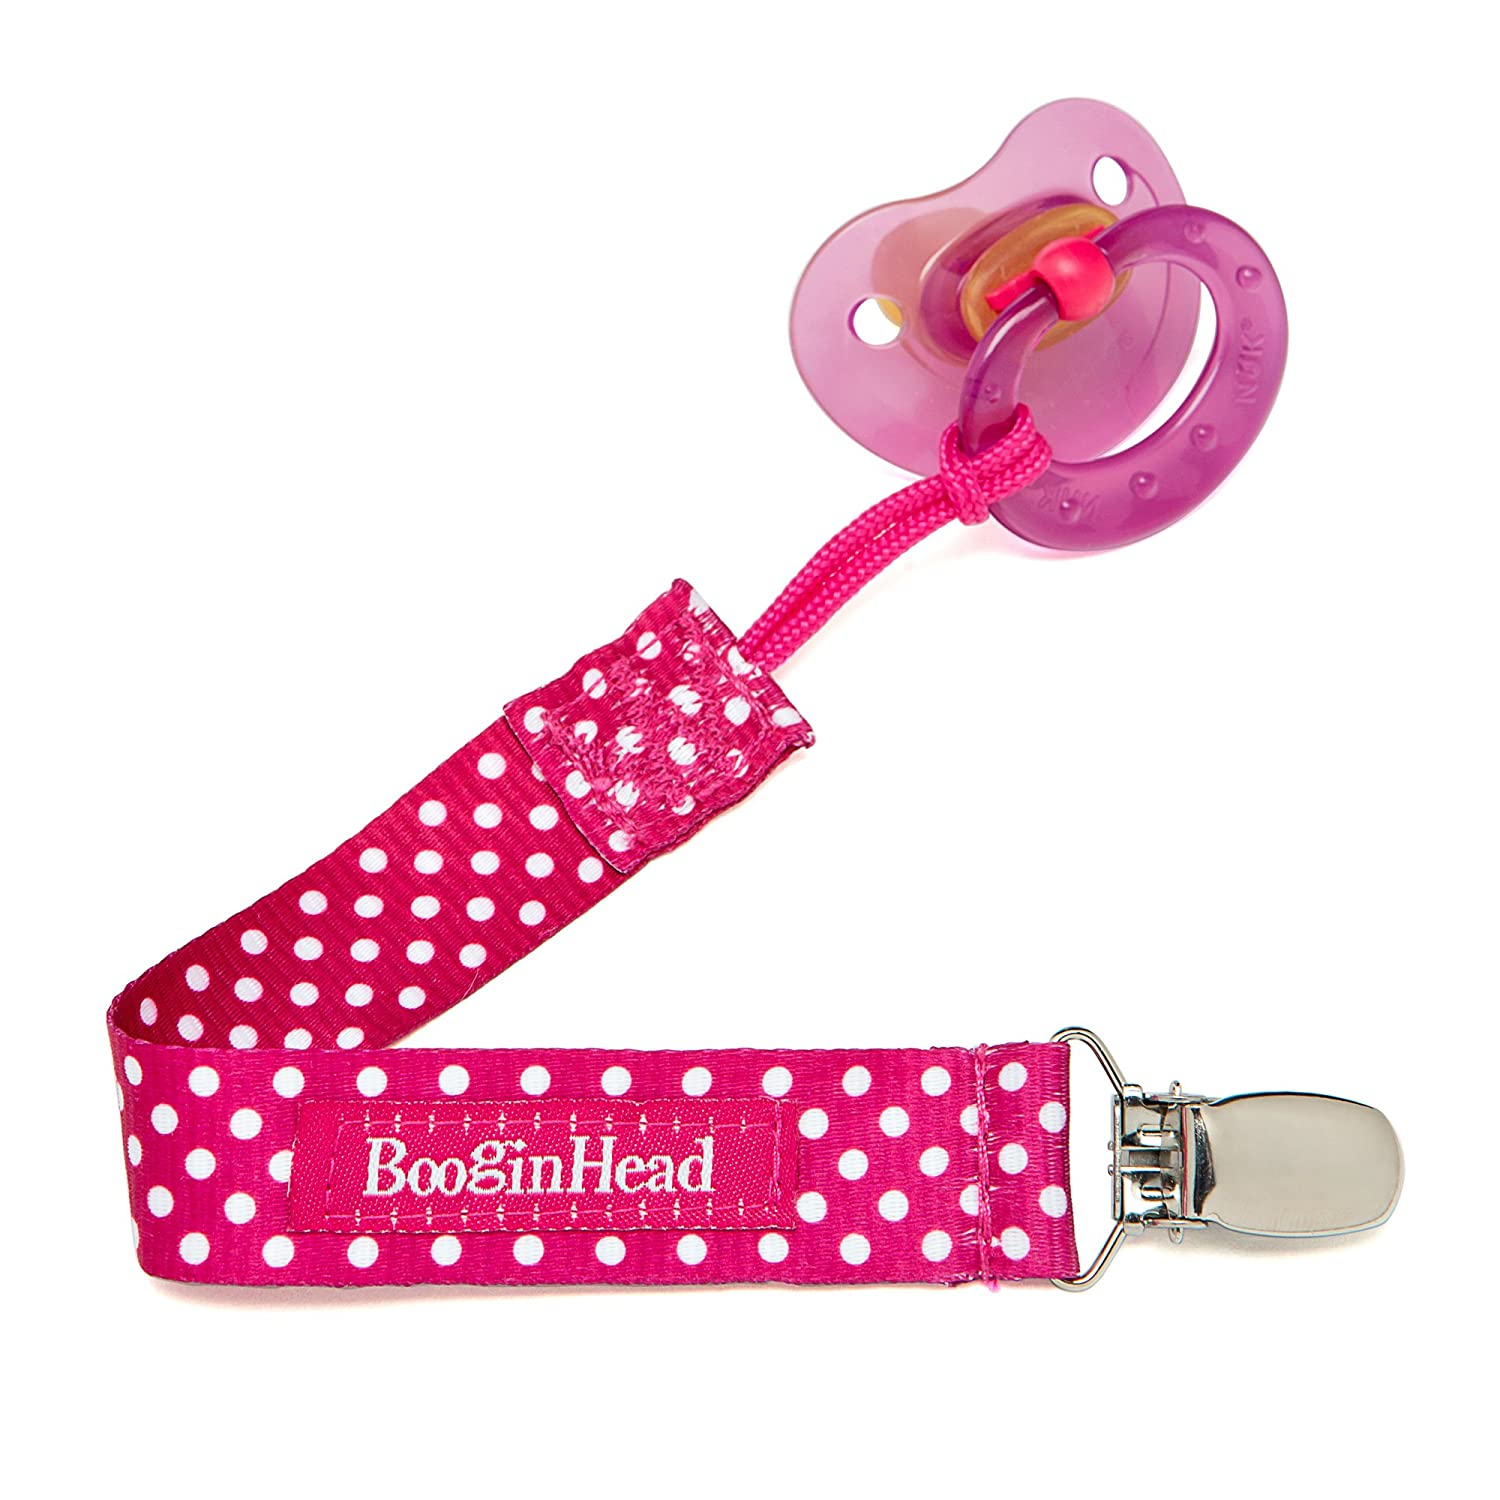 BooginHead PaciGrip in Pink Polka Dot BG - PPD